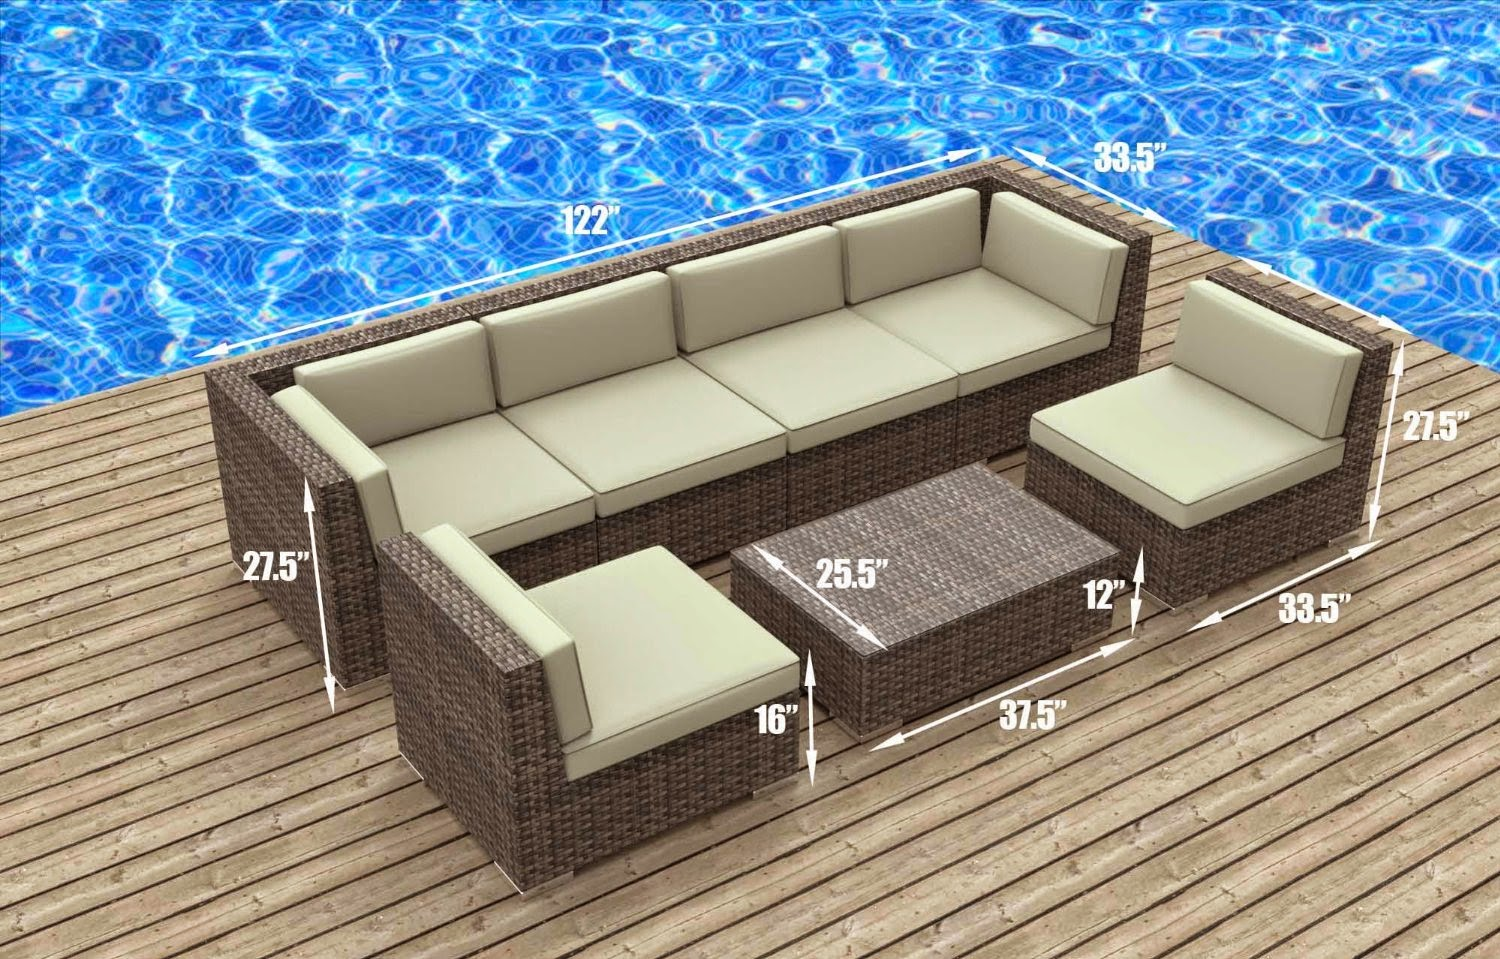 Patio Backyard Furniture :  Patio Furniture Sofa Sectional Couch Set  Outdoor Patio Furniture